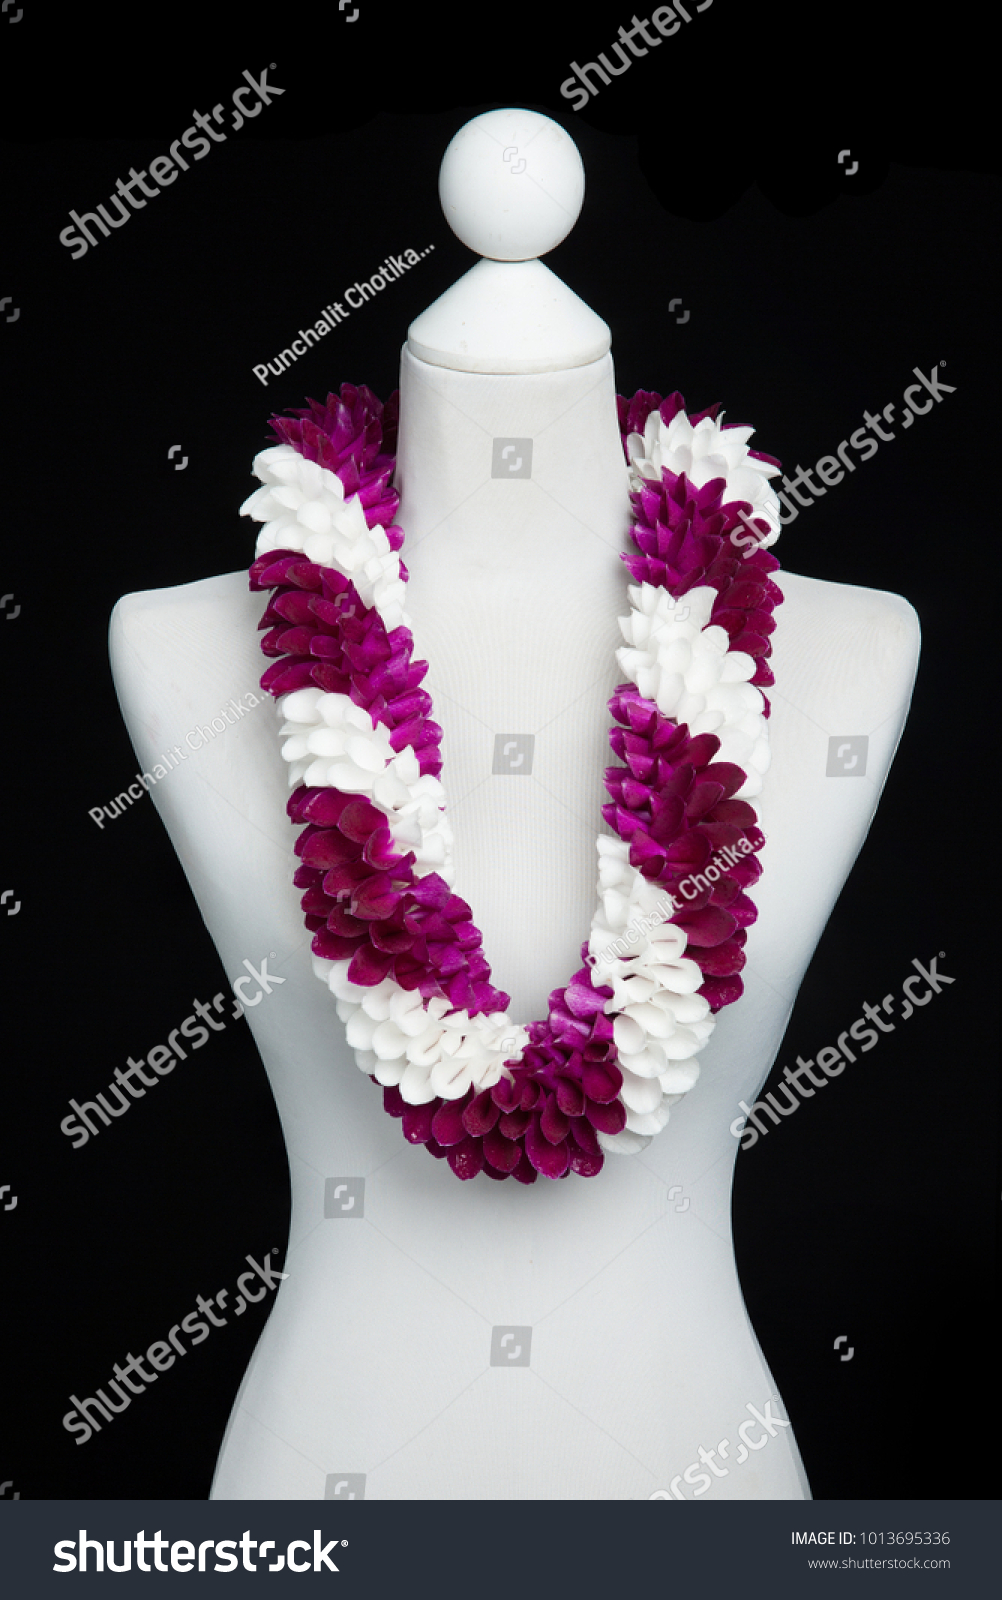 Hawaii fancy flowers lei necklace made stock photo royalty free hawaii fancy flowers lei necklace made from orchid flower petal purple and white in spiral izmirmasajfo Images